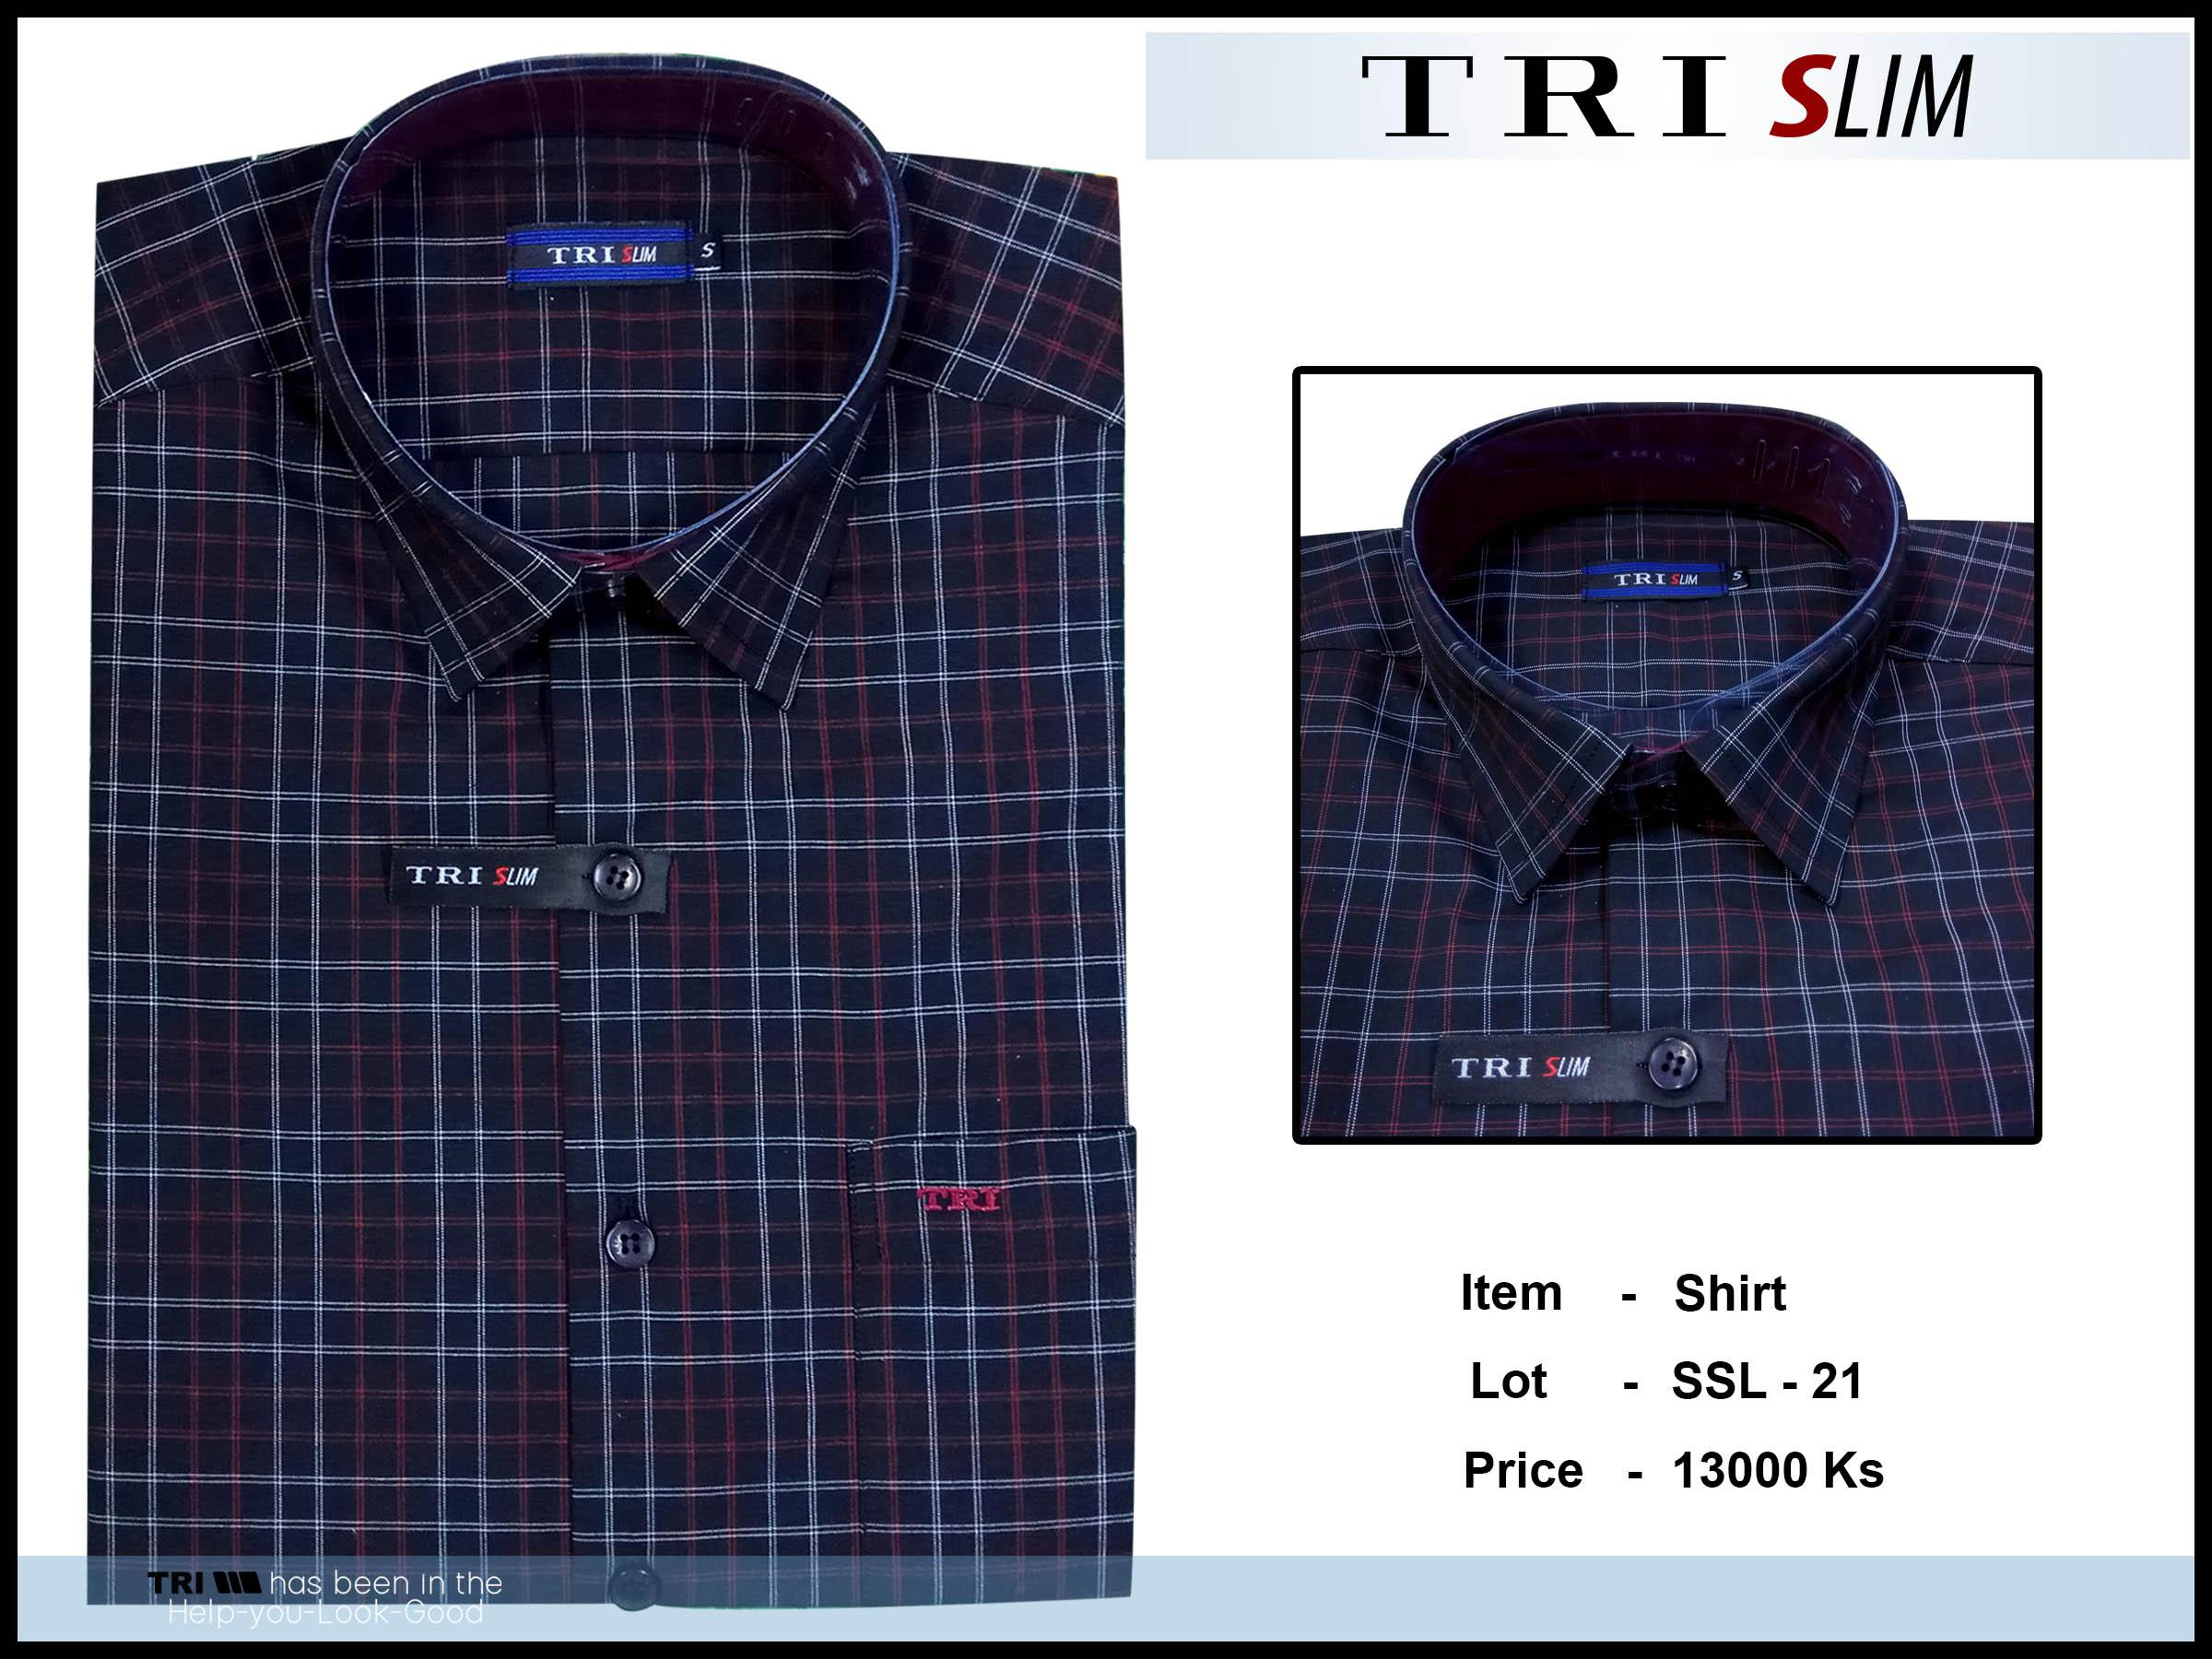 Tri Slim Shirt SSL - 21 - 9